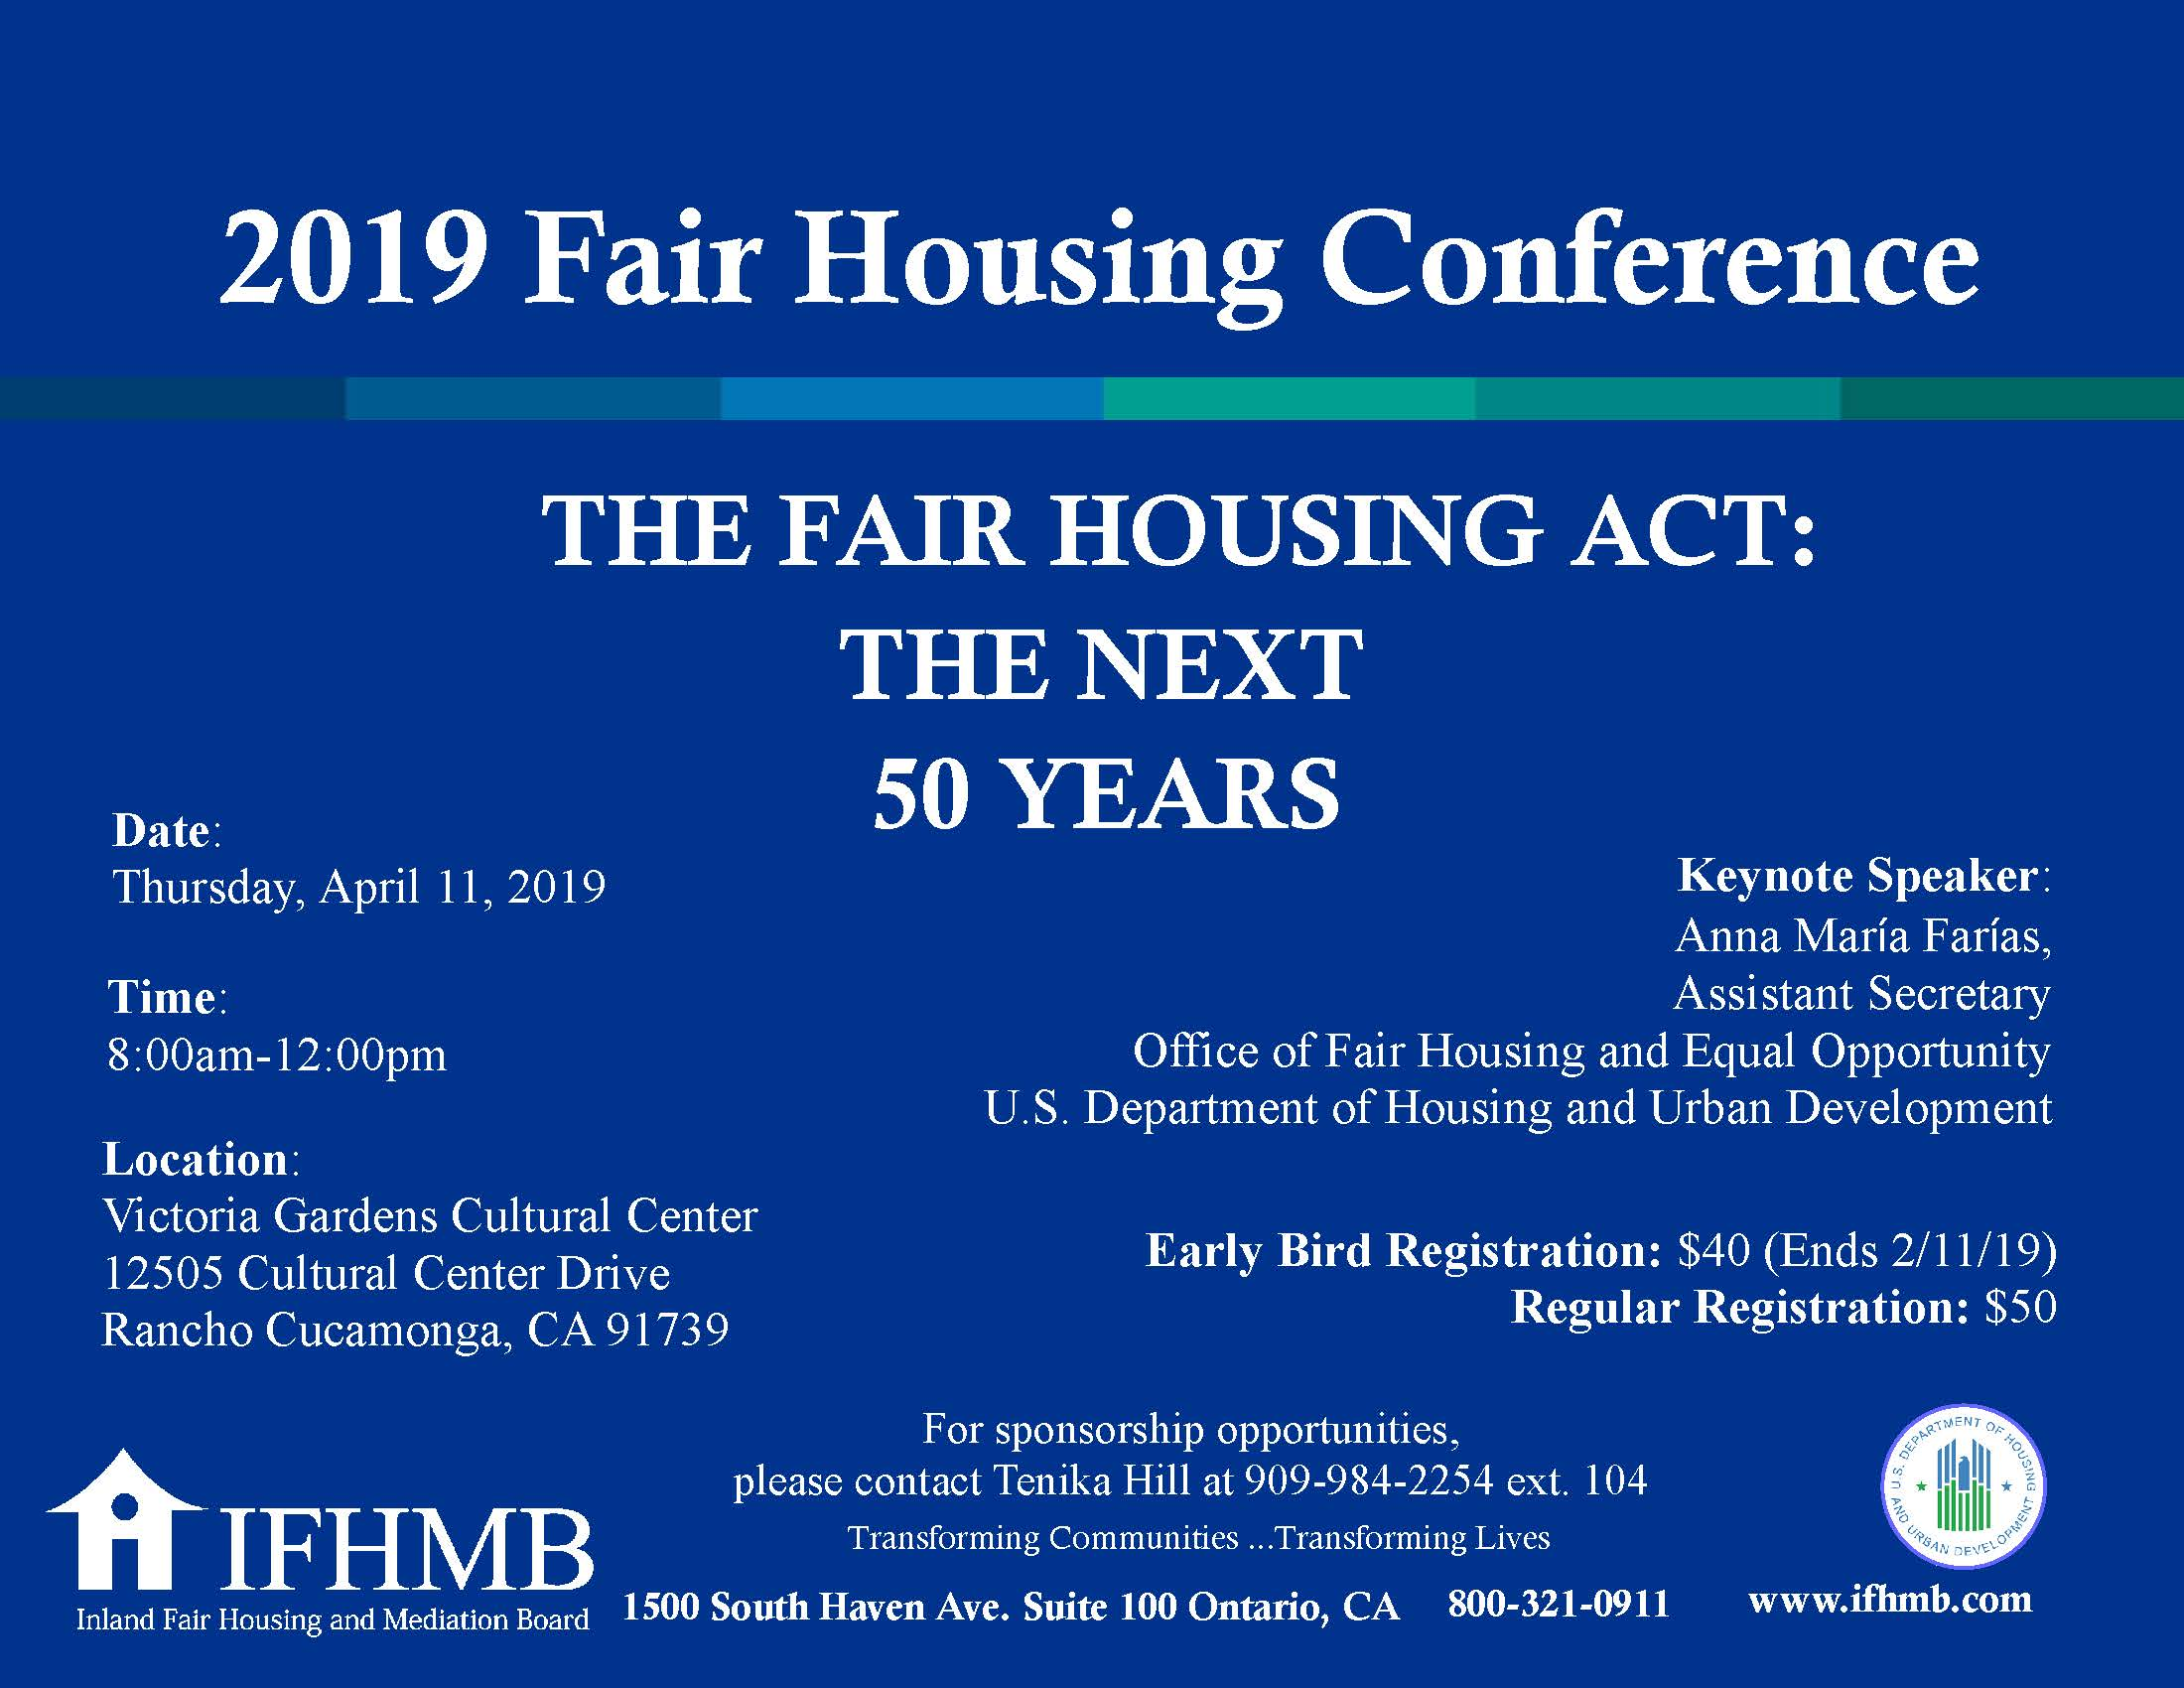 2019 Fair Housing Conference